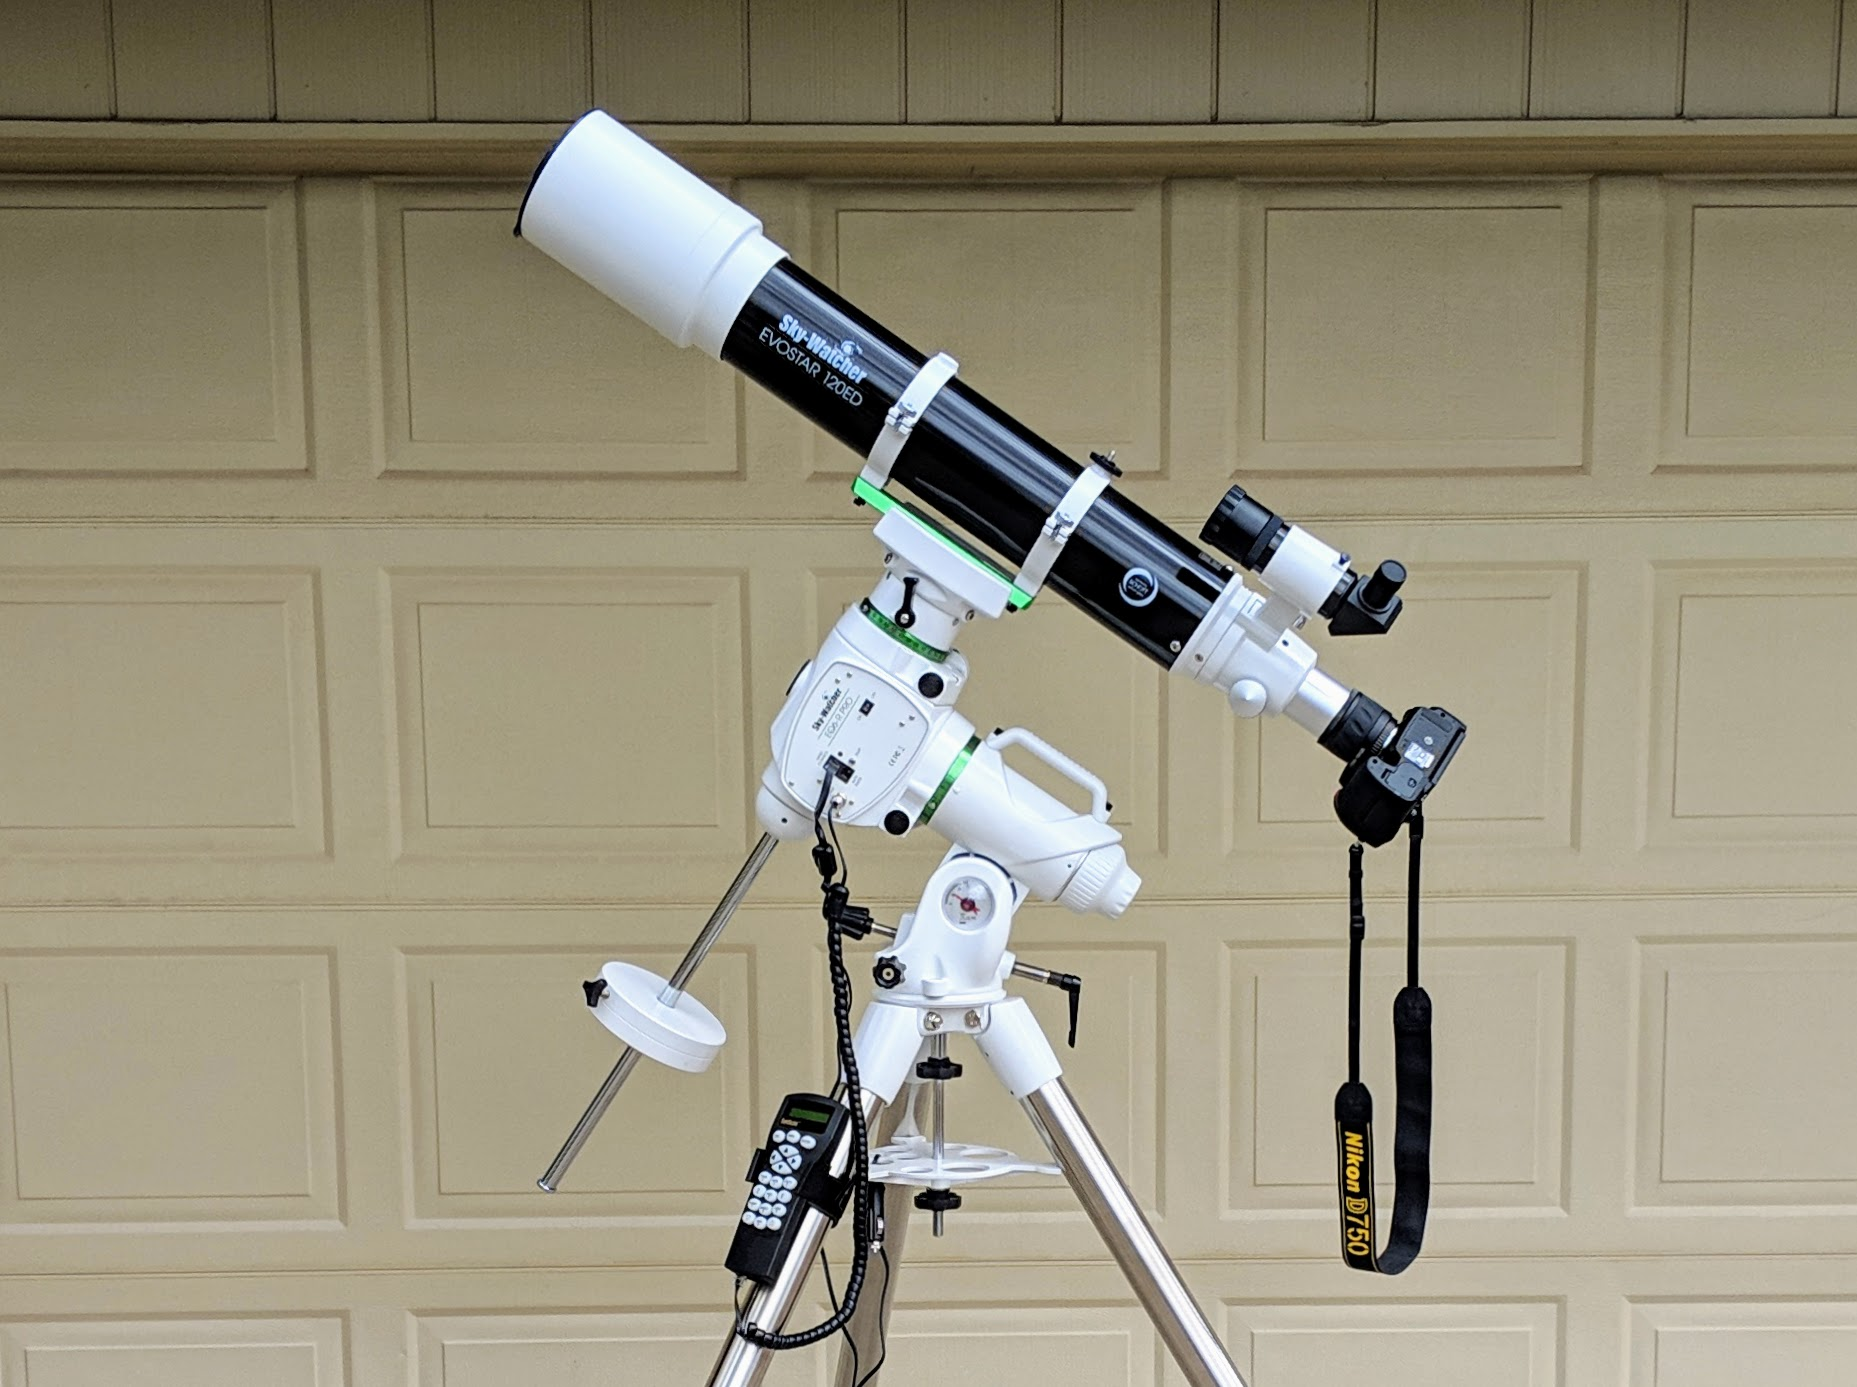 Astrophotography - Getting Started